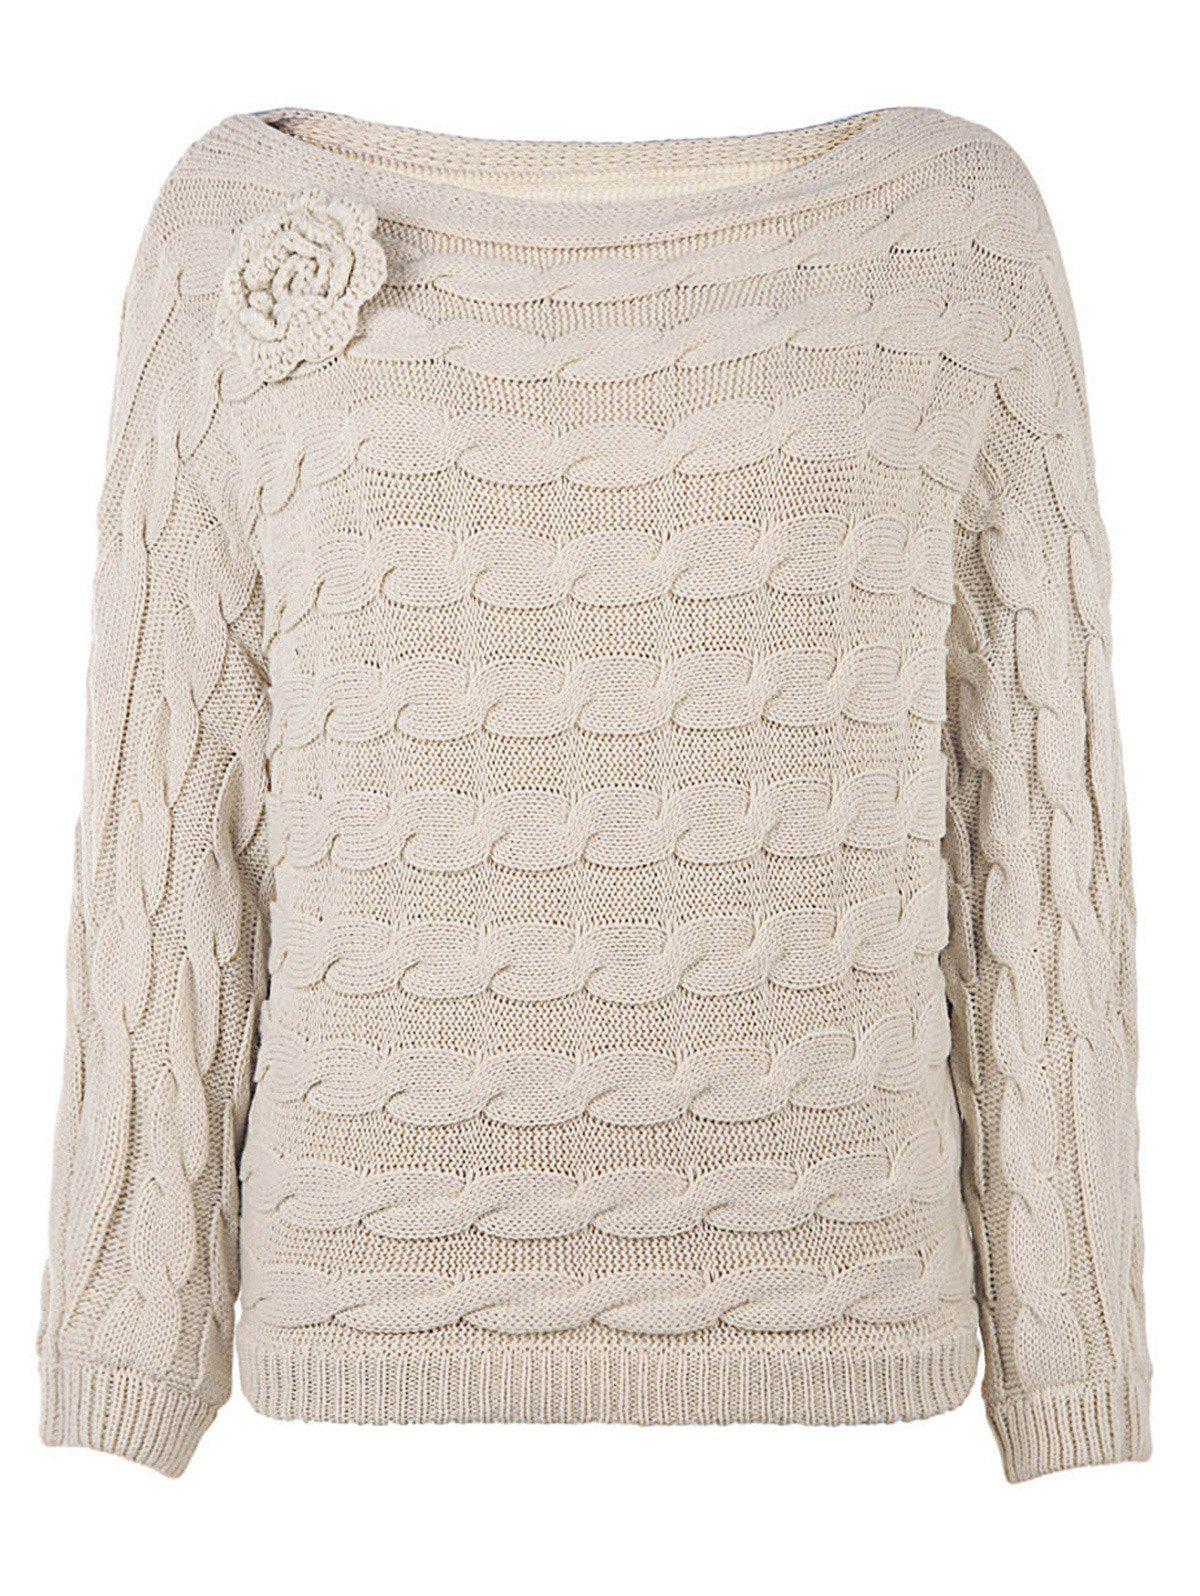 Slash Neck Knit Jumper Sweater - WARM WHITE ONE SIZE